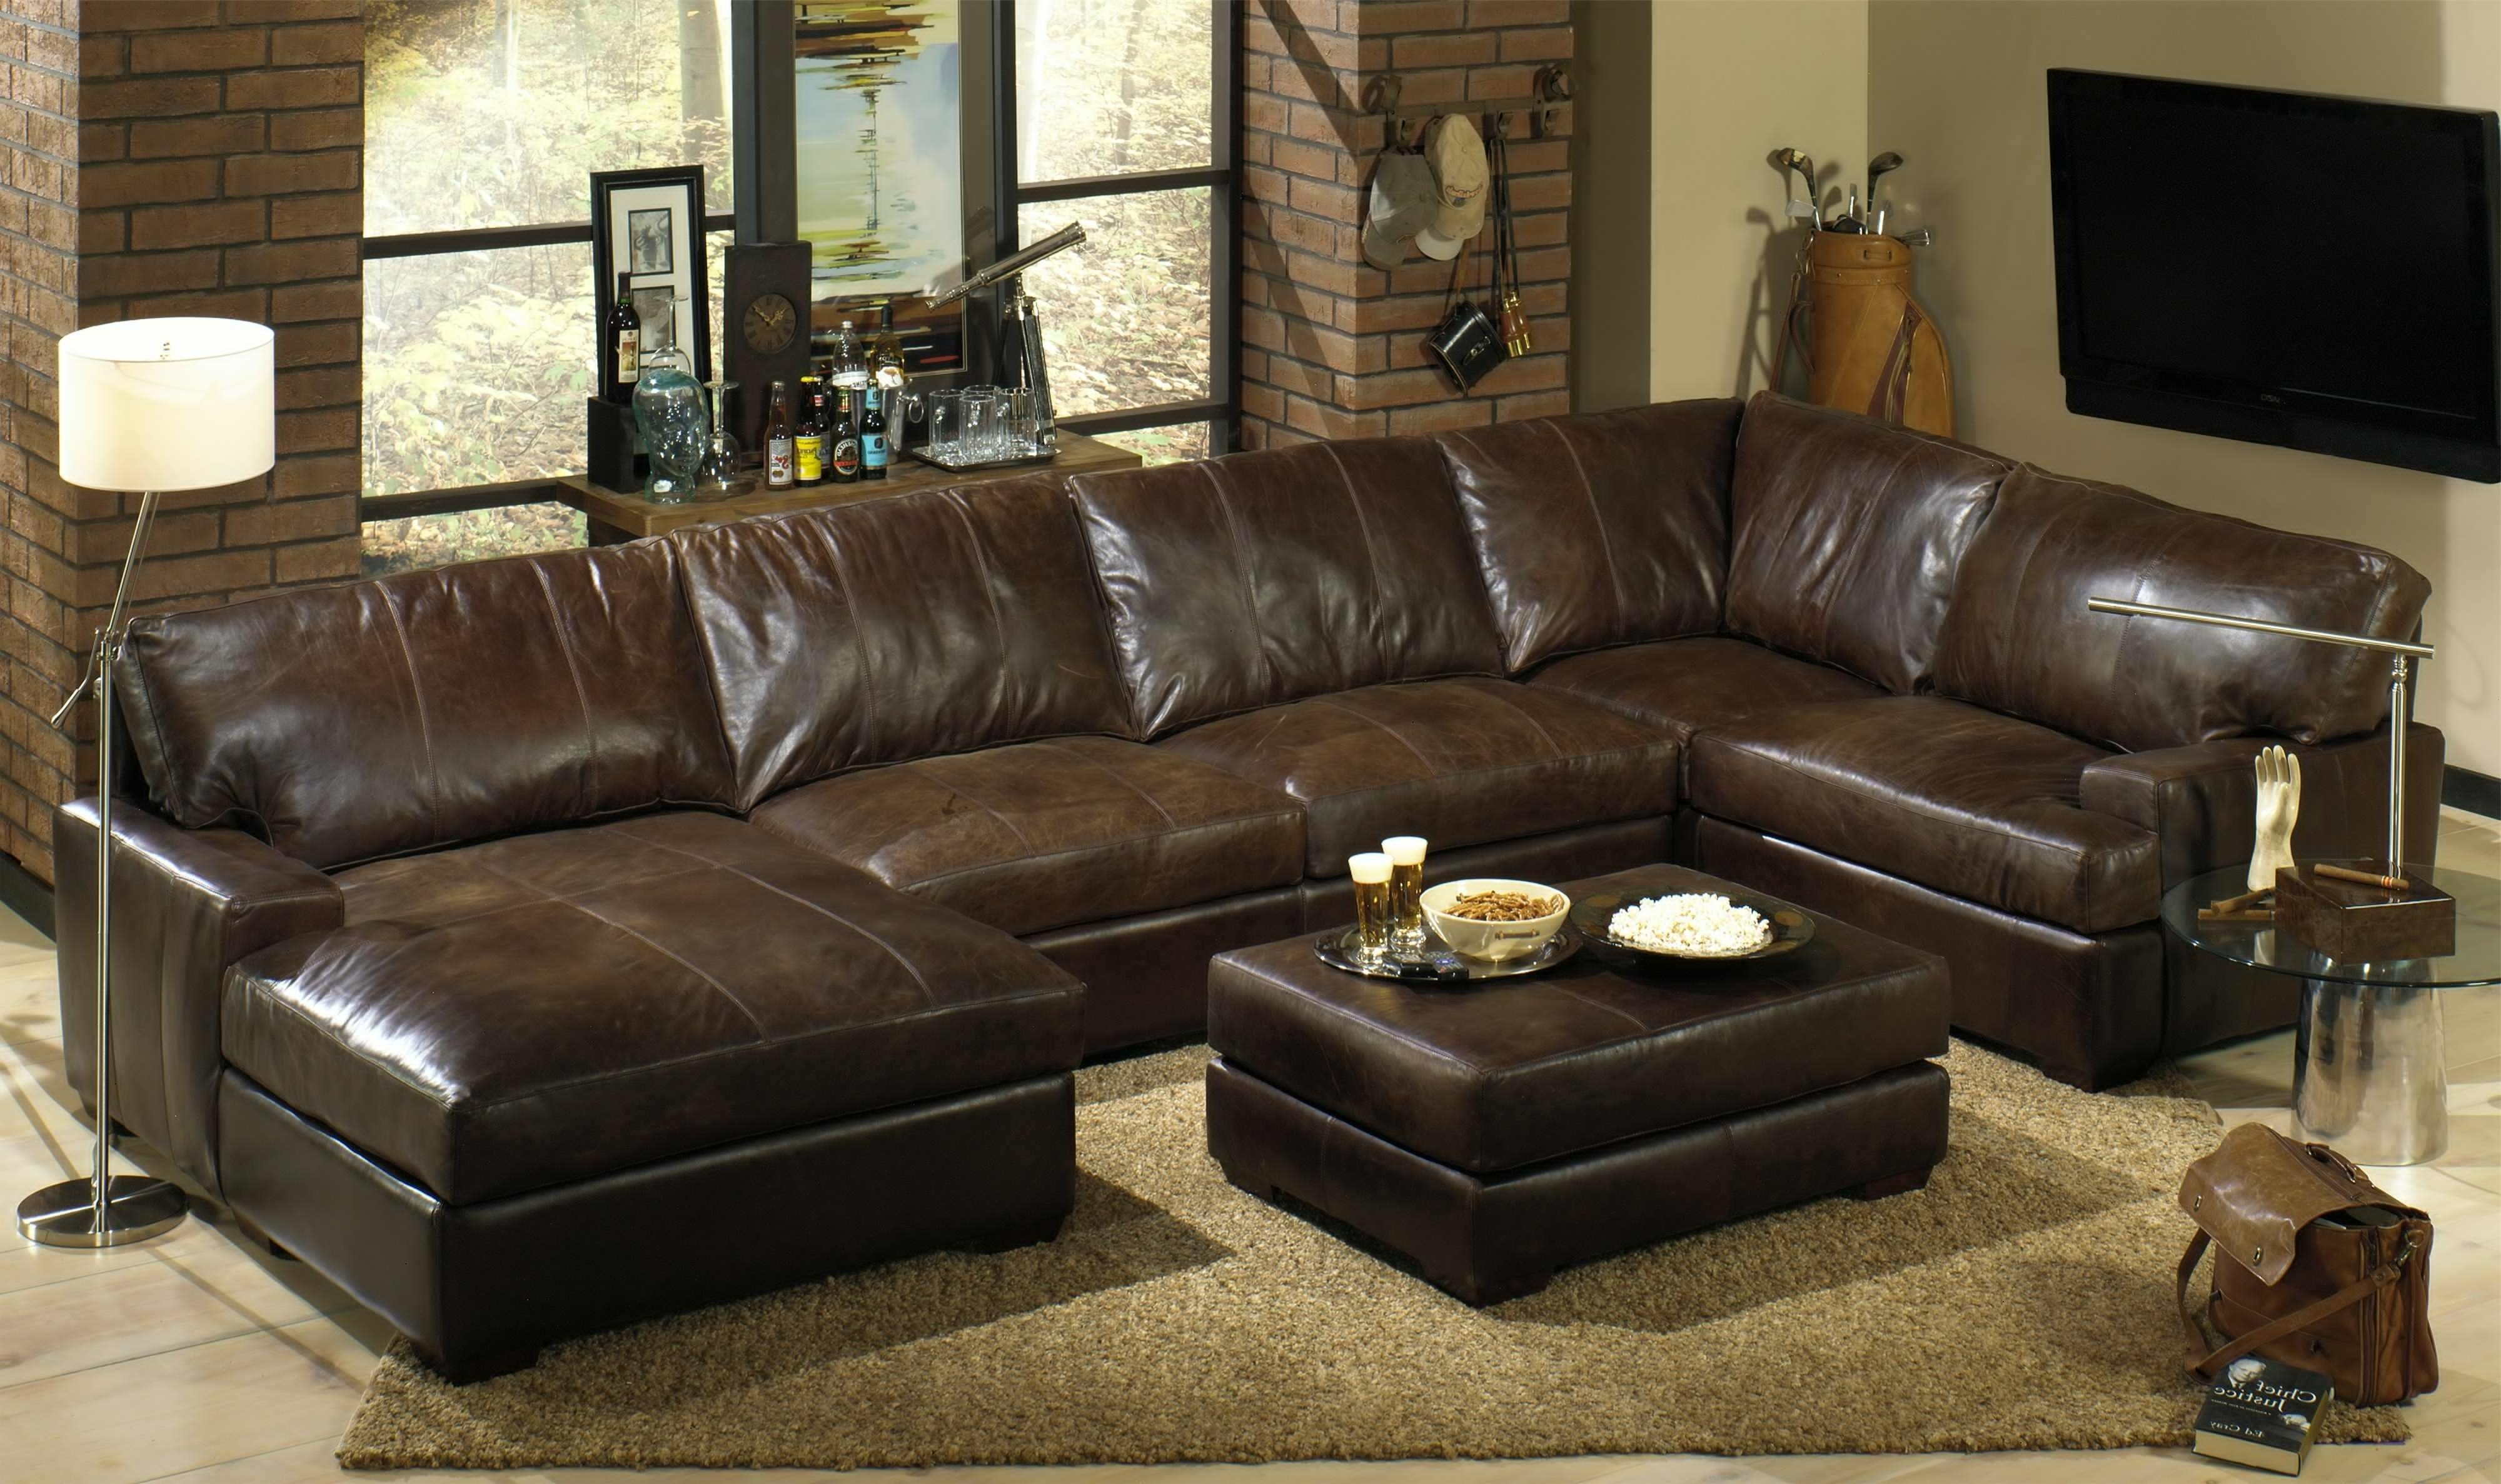 2018 Leather Loveseat Recliner Leather Couches Clearance Leather Corner With Regard To Clearance Sectional Sofas (View 2 of 15)